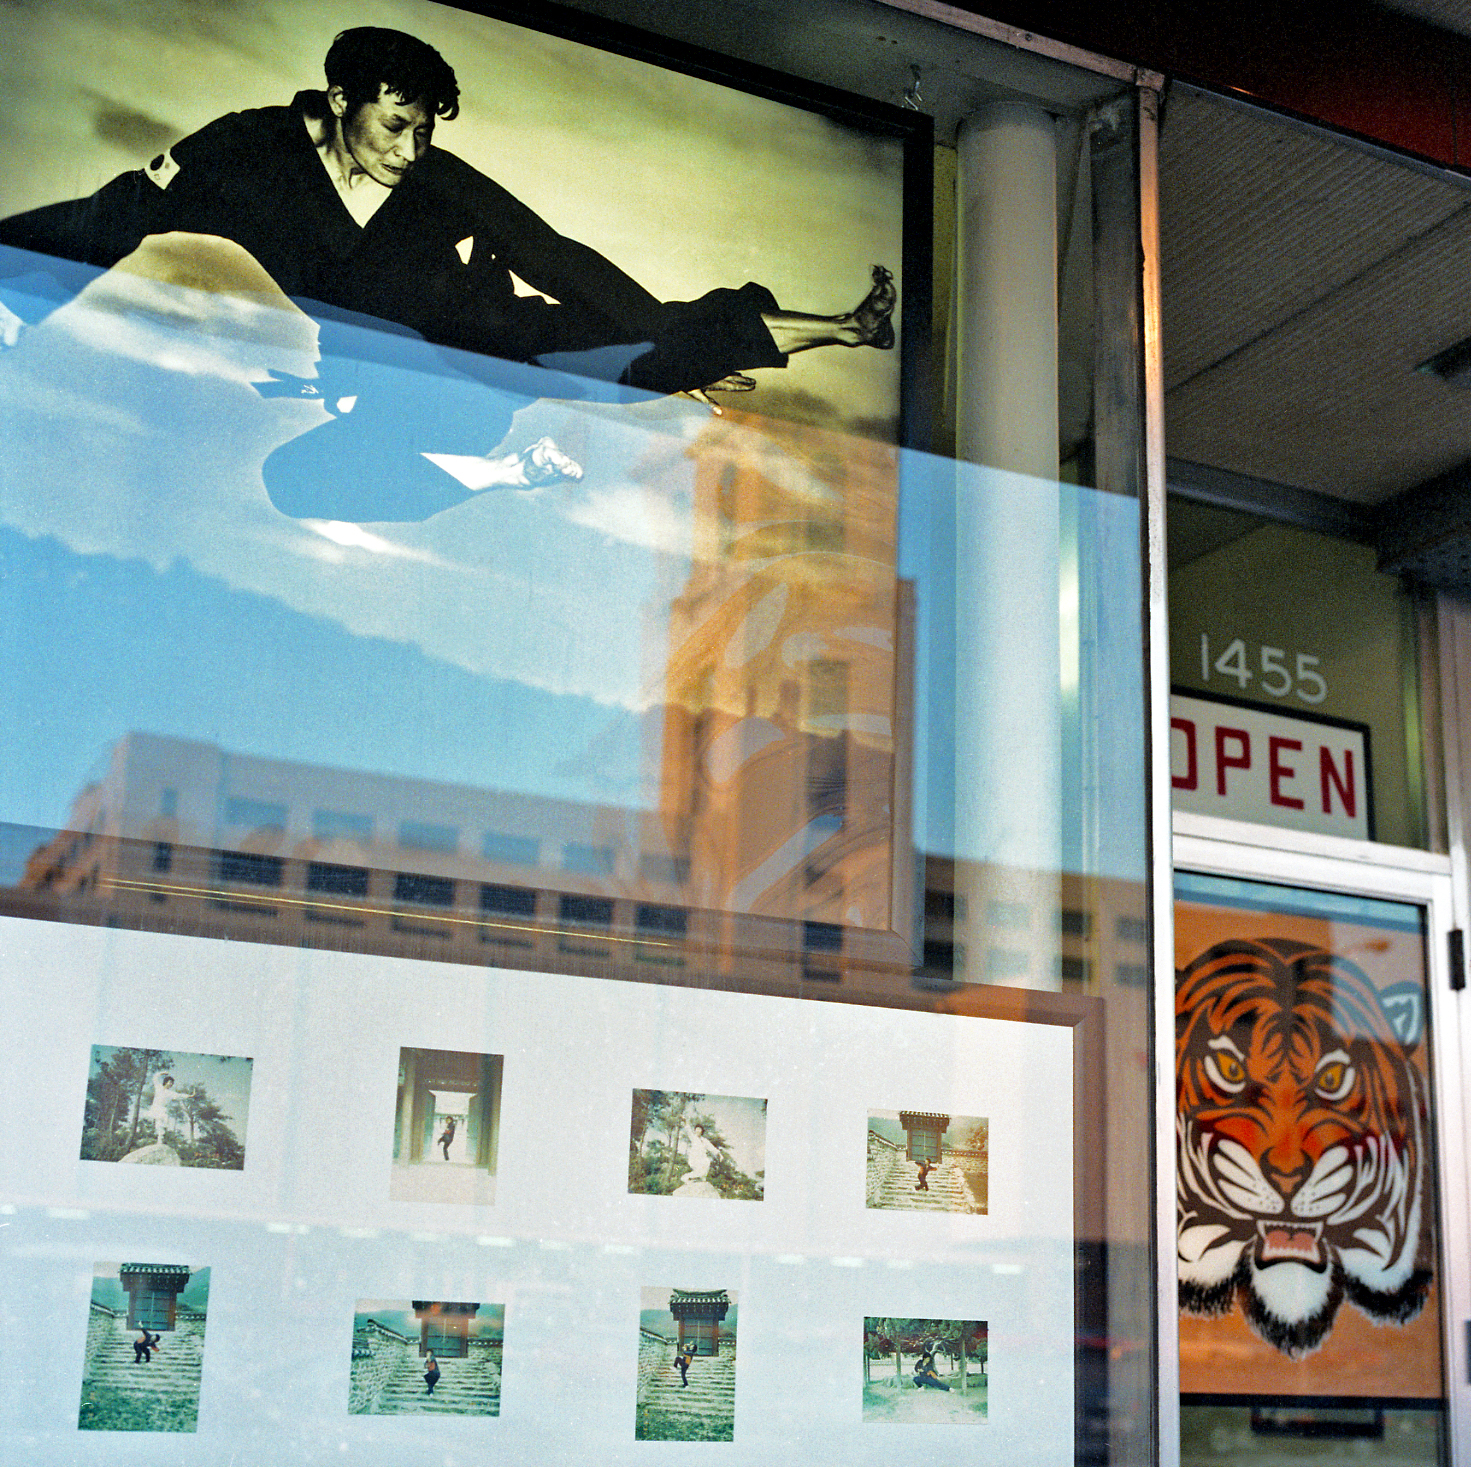 Chun Moo Quan, University Avenue, Saint Paul, Minnesota, March 1989. Martial arts practitioner executes a high-kick over the reflection of the Wards store tower across the street (torn down and replaced by shopping mall including a Herbergers store, recently closed, T.J. Maxx and Cub Foods).